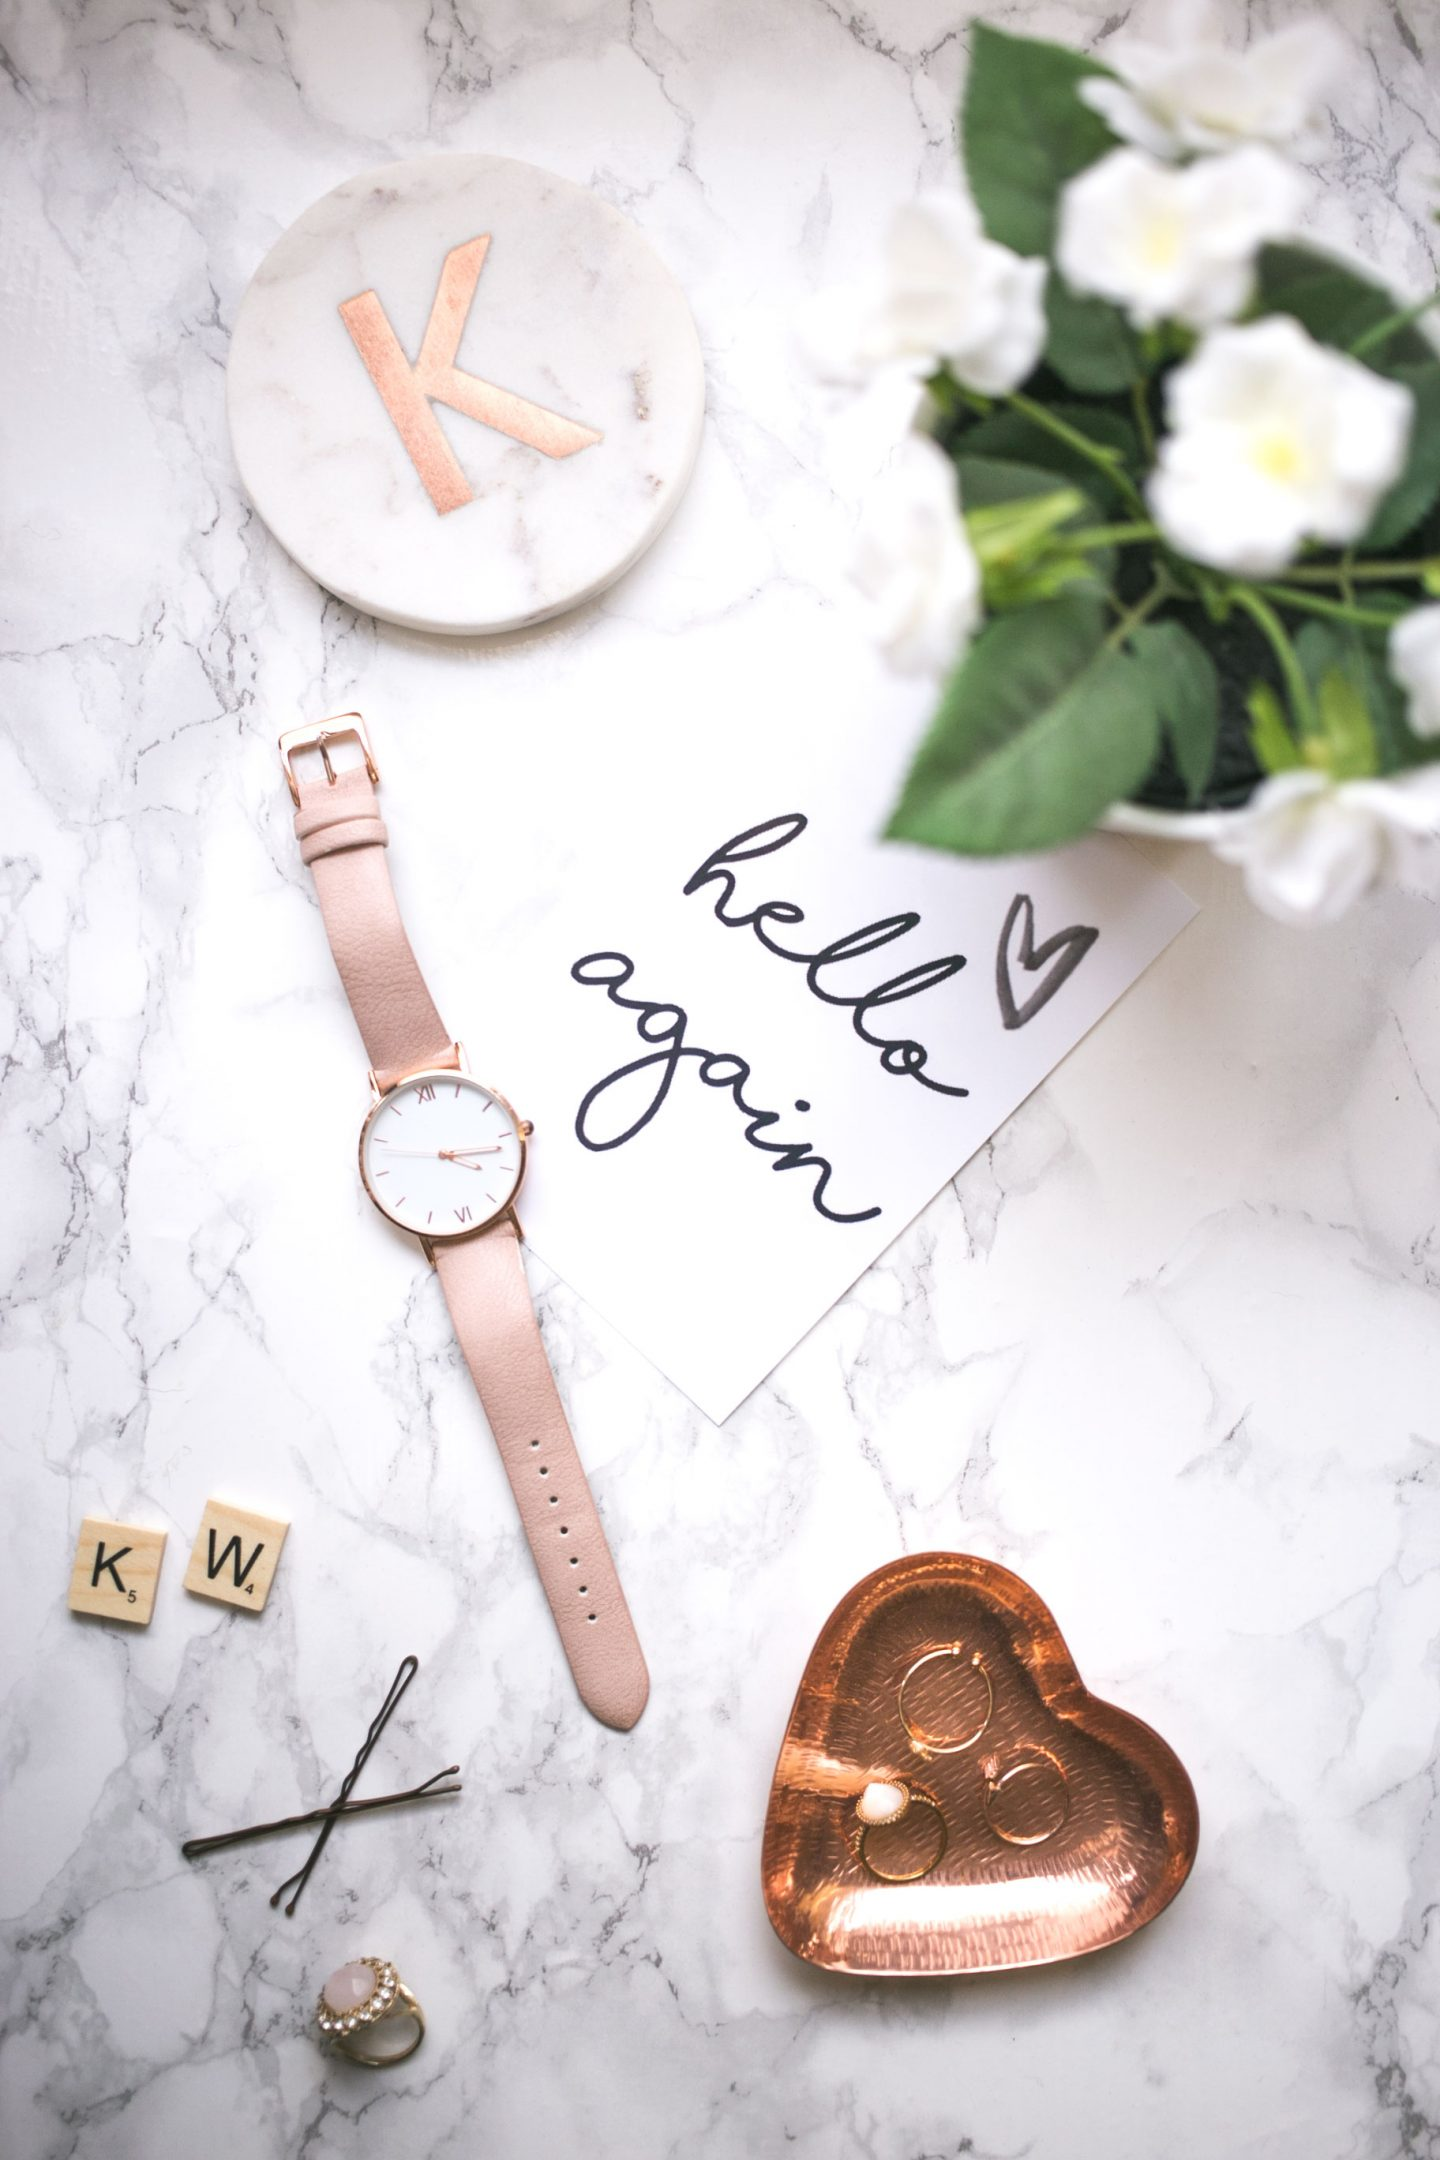 ©Katiewrites.co.uk Hello Again, Flatlay, Flat lay, Katie Writes Blog, Katie Writes,